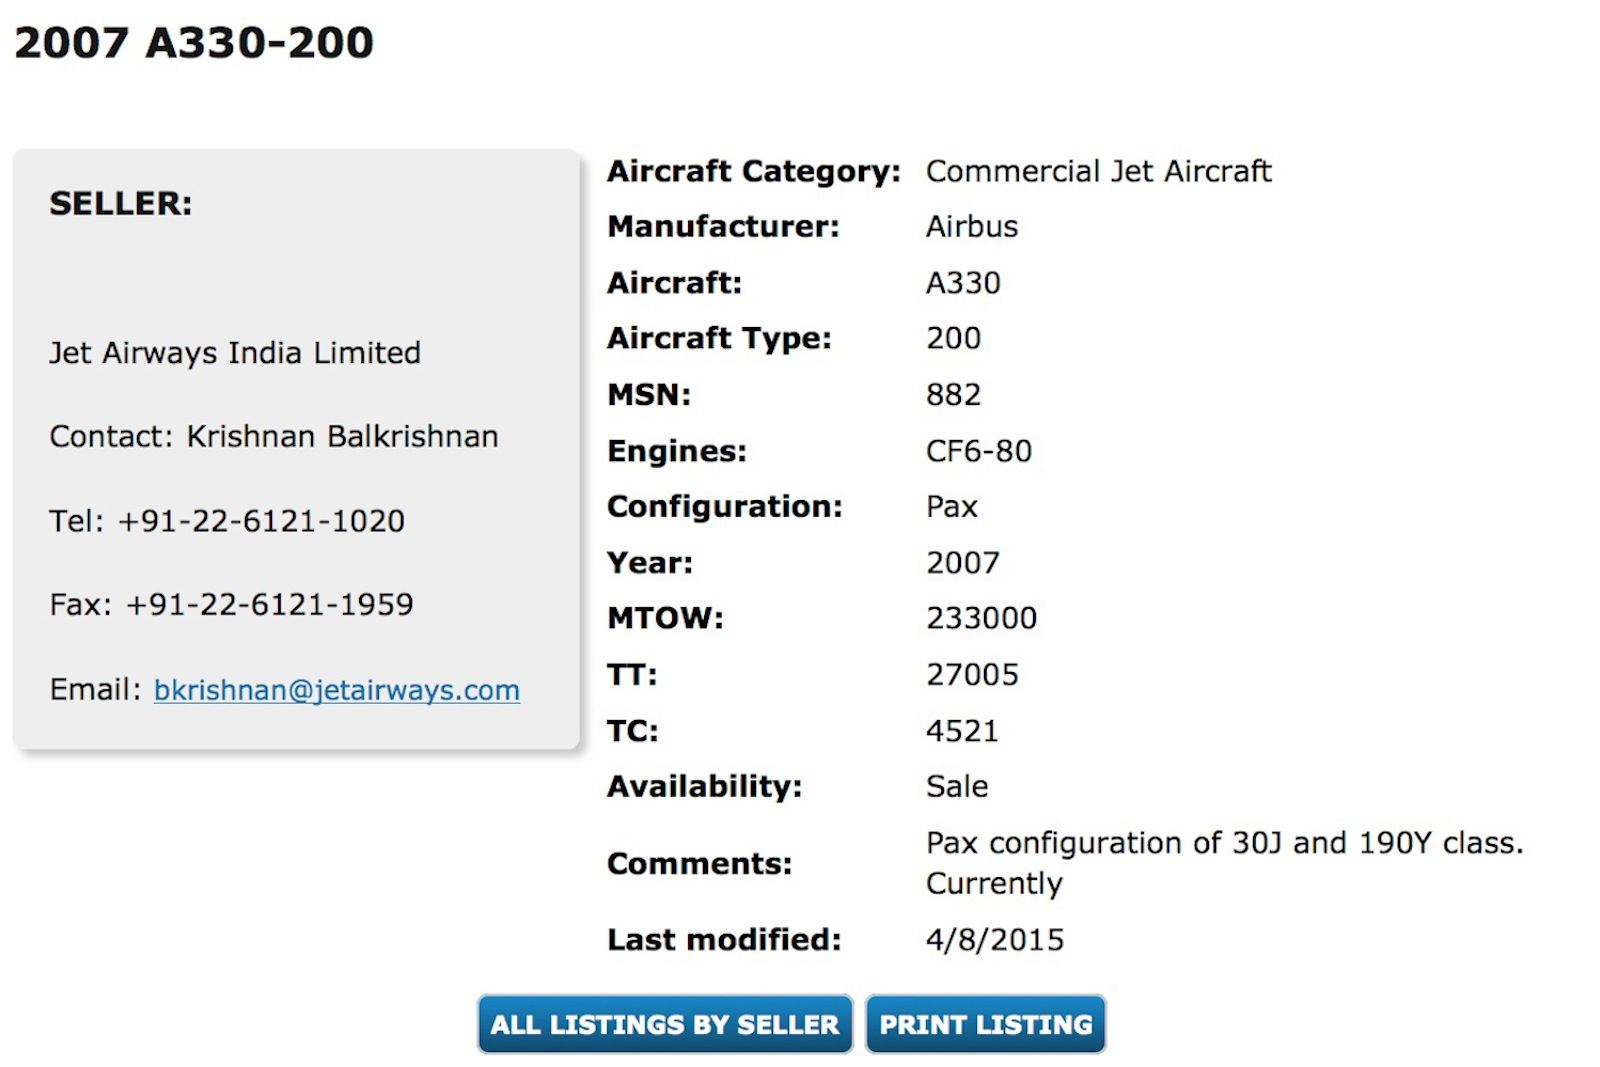 Jet Airways offers all its Boeing 777 and Airbus A330-200s